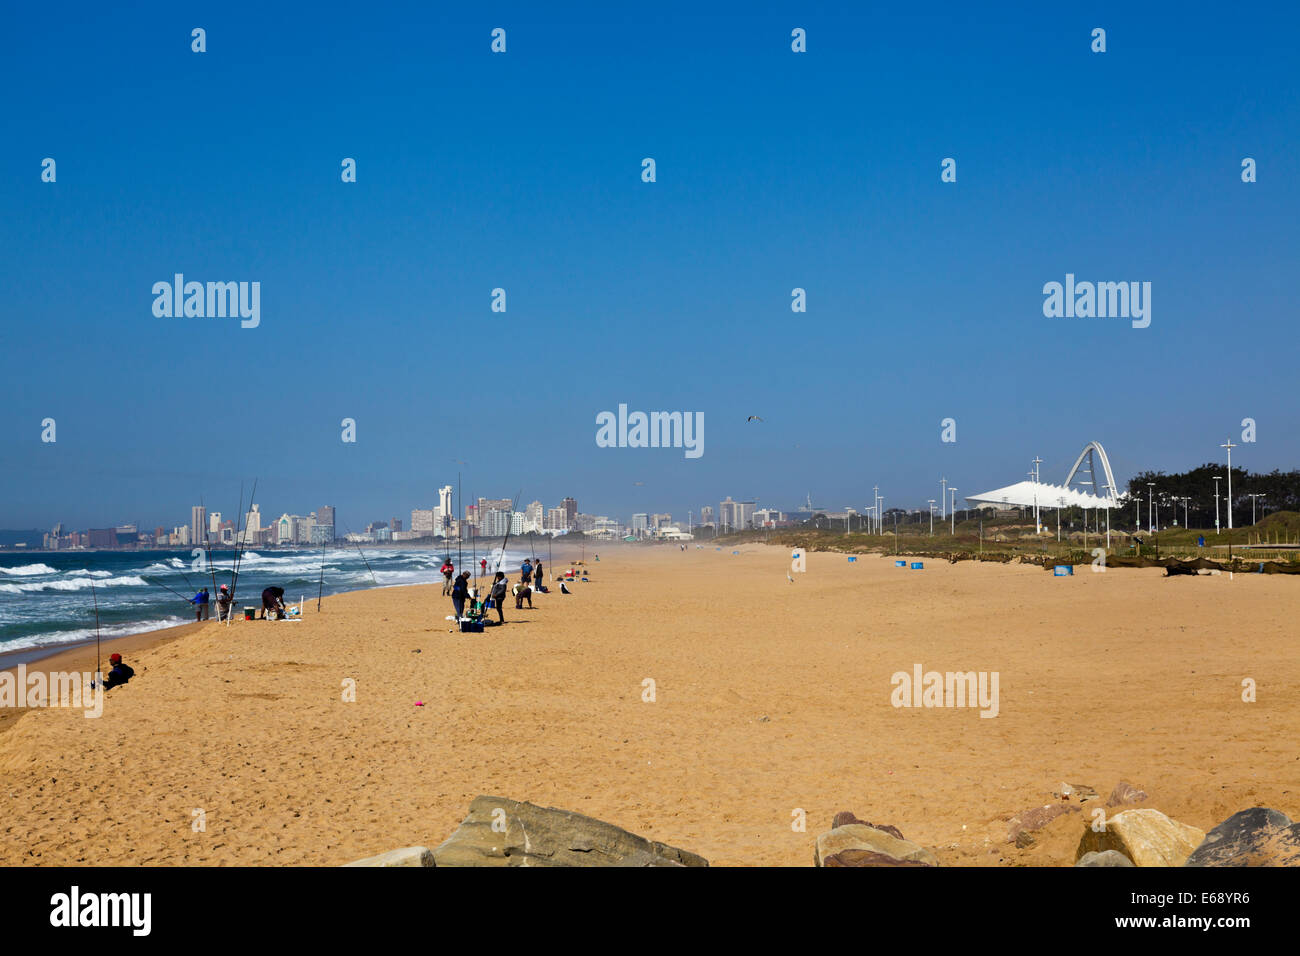 Durban South Africa. Fishermen on the beach with the iconic Moses Mabhida world cup soccer stadium and city of Durban - Stock Image